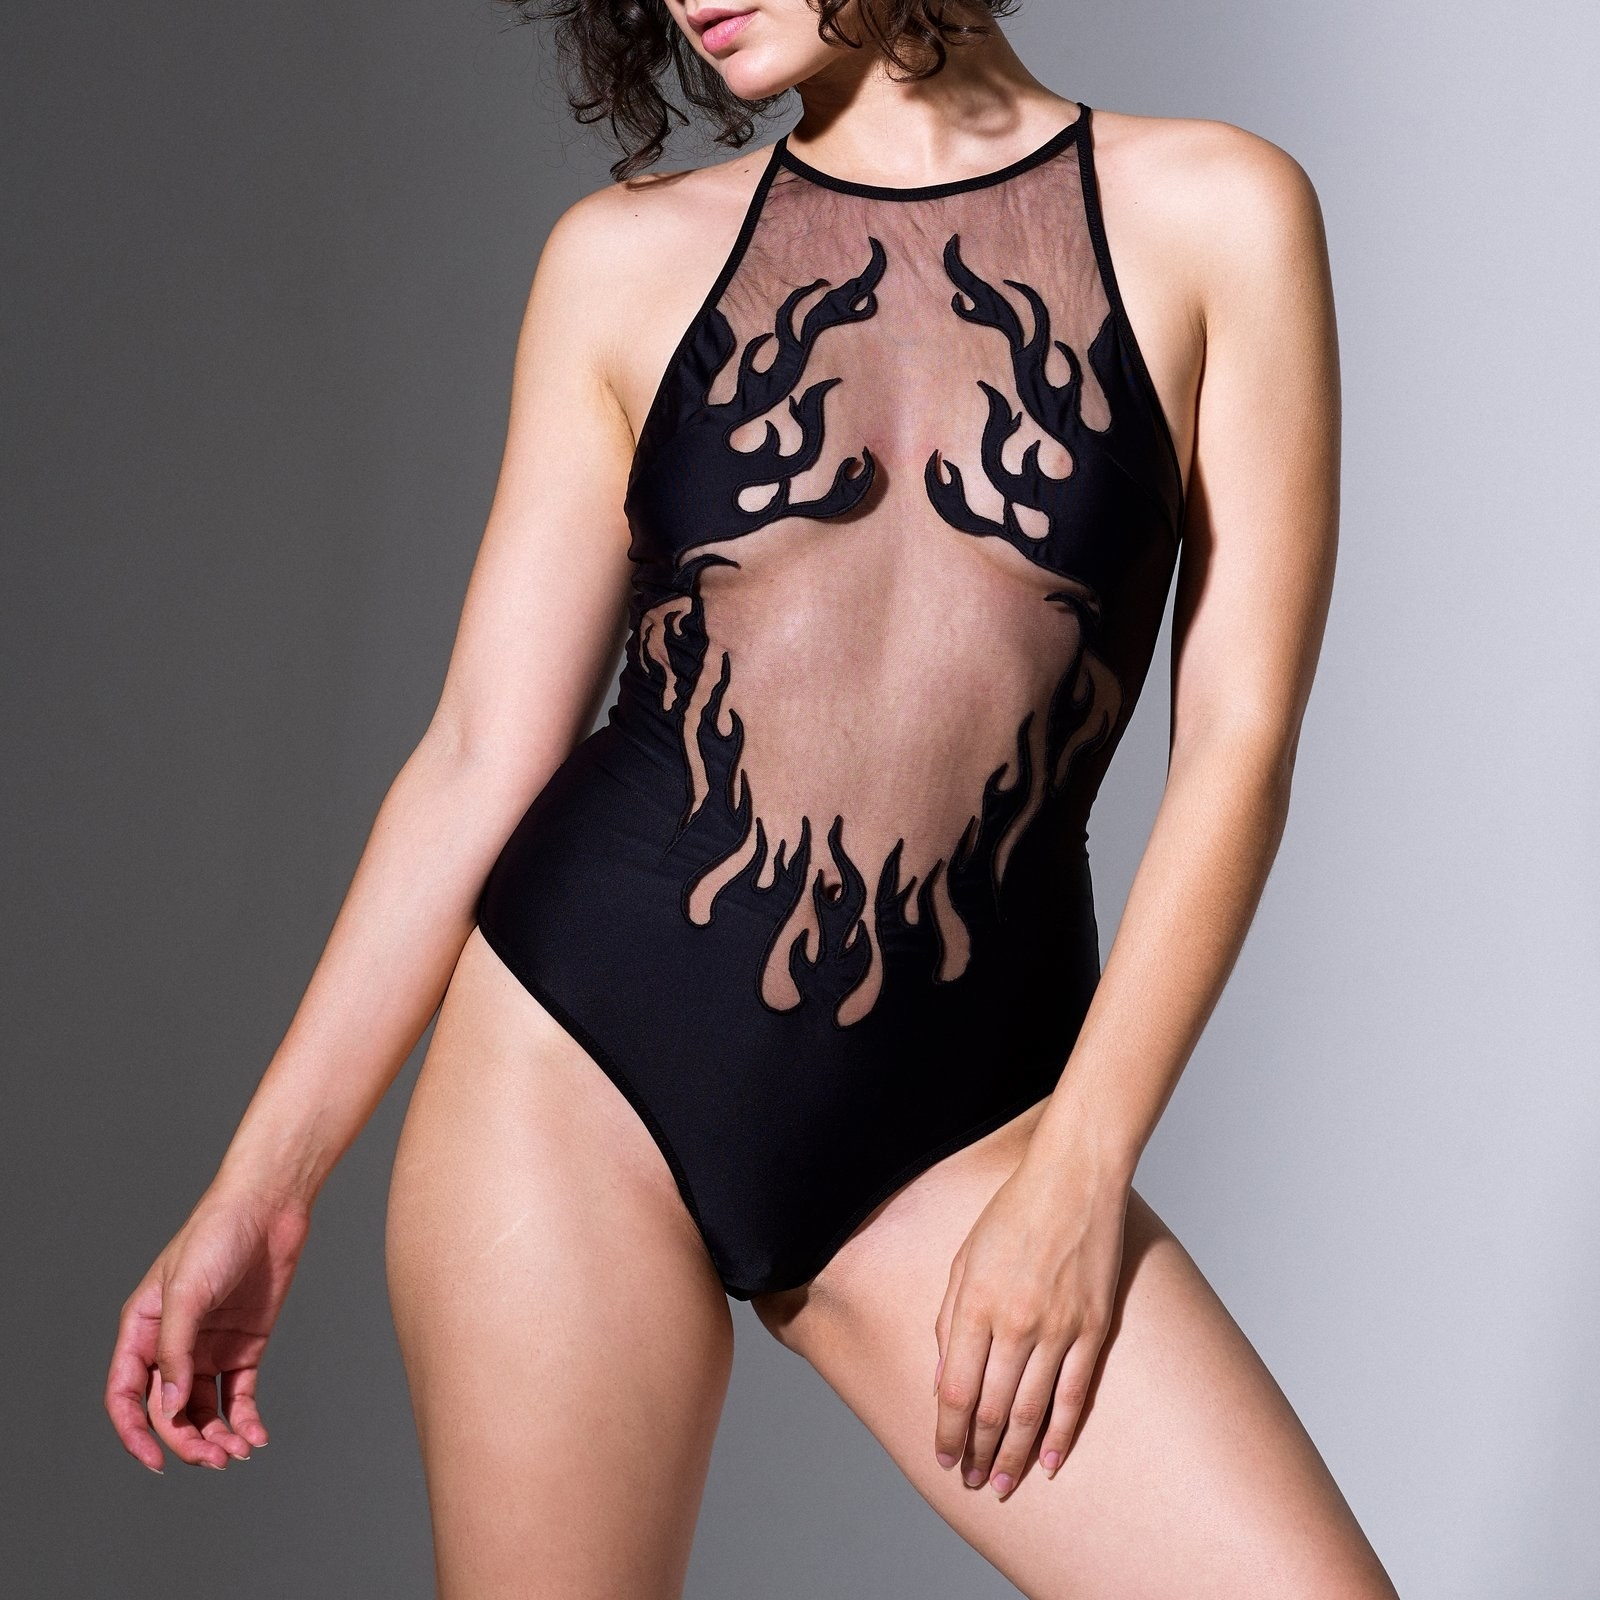 a model in a black body suit with cut out flames